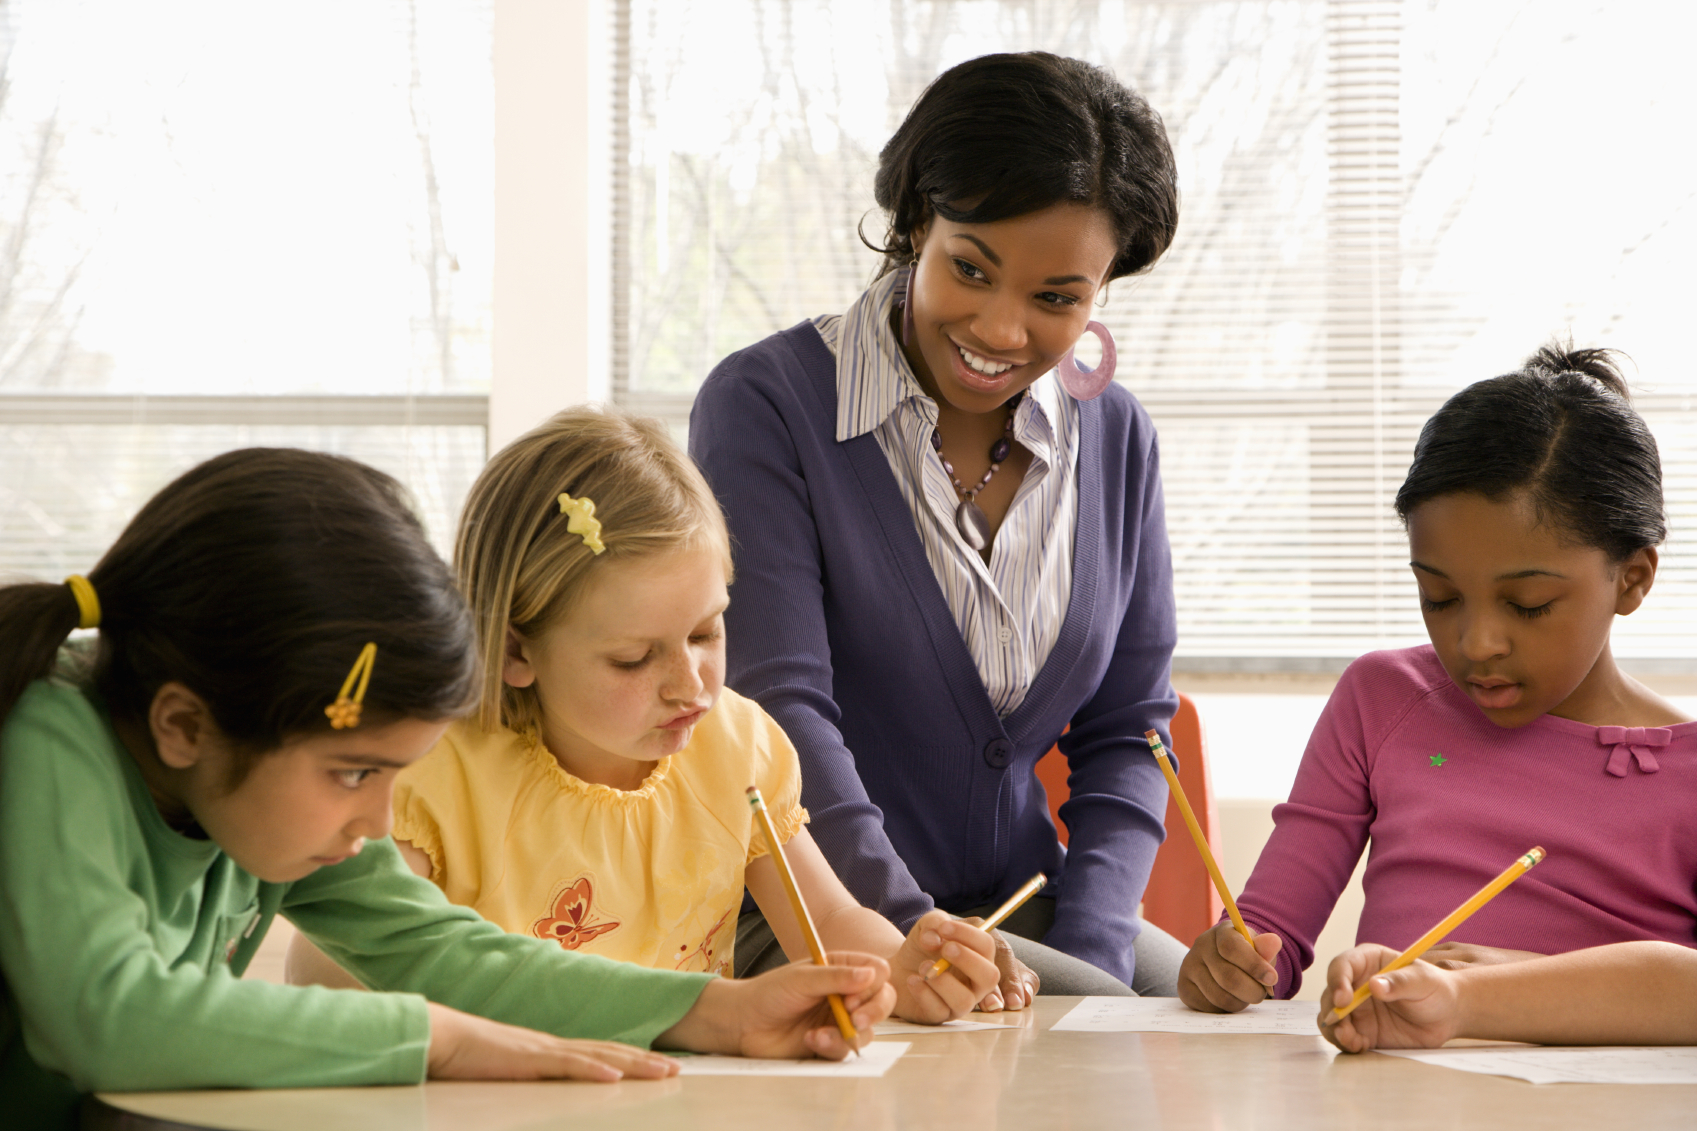 First-year teacher tips for Bachelor of Education students